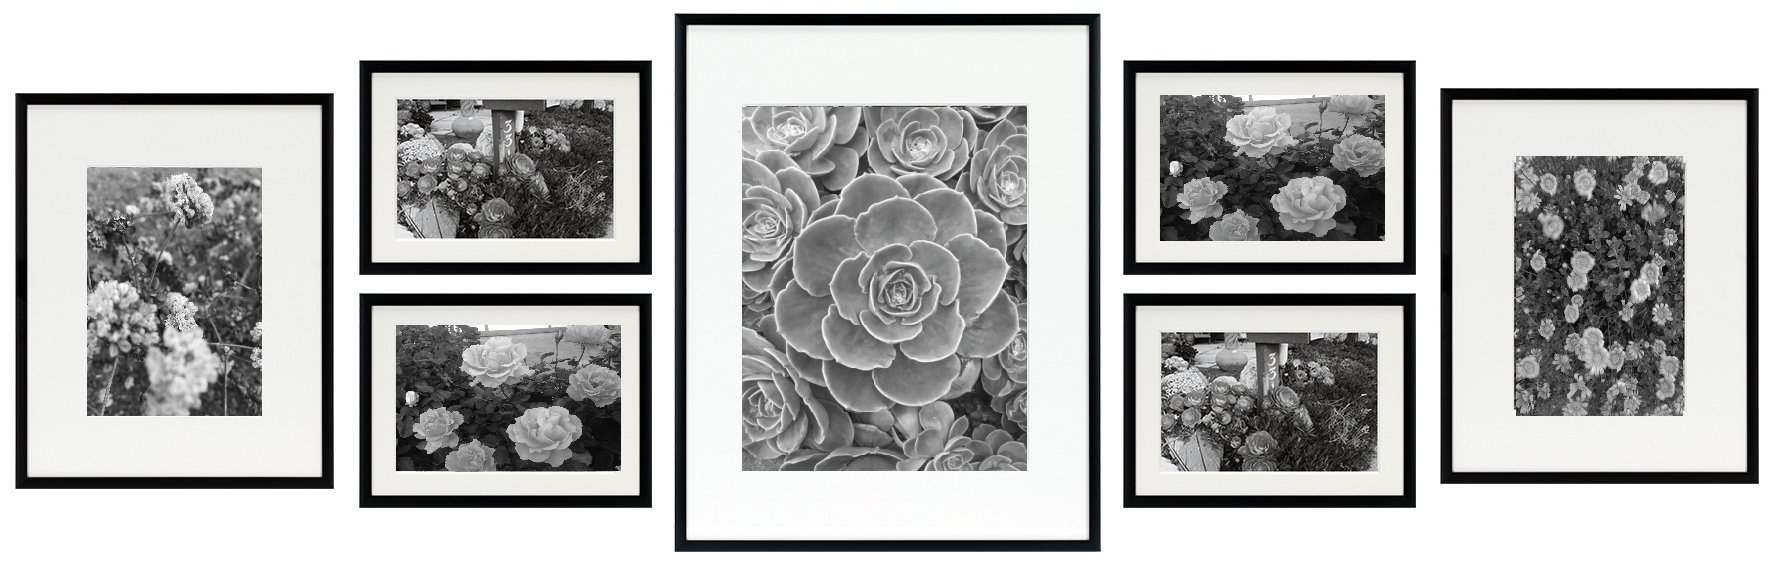 Golden State Art, Metal Wall Photo Frame Collection, Set of 7, Aluminum Black Photo Frame with Ivory Color Mat & Real Glass (Black) by Golden State Art